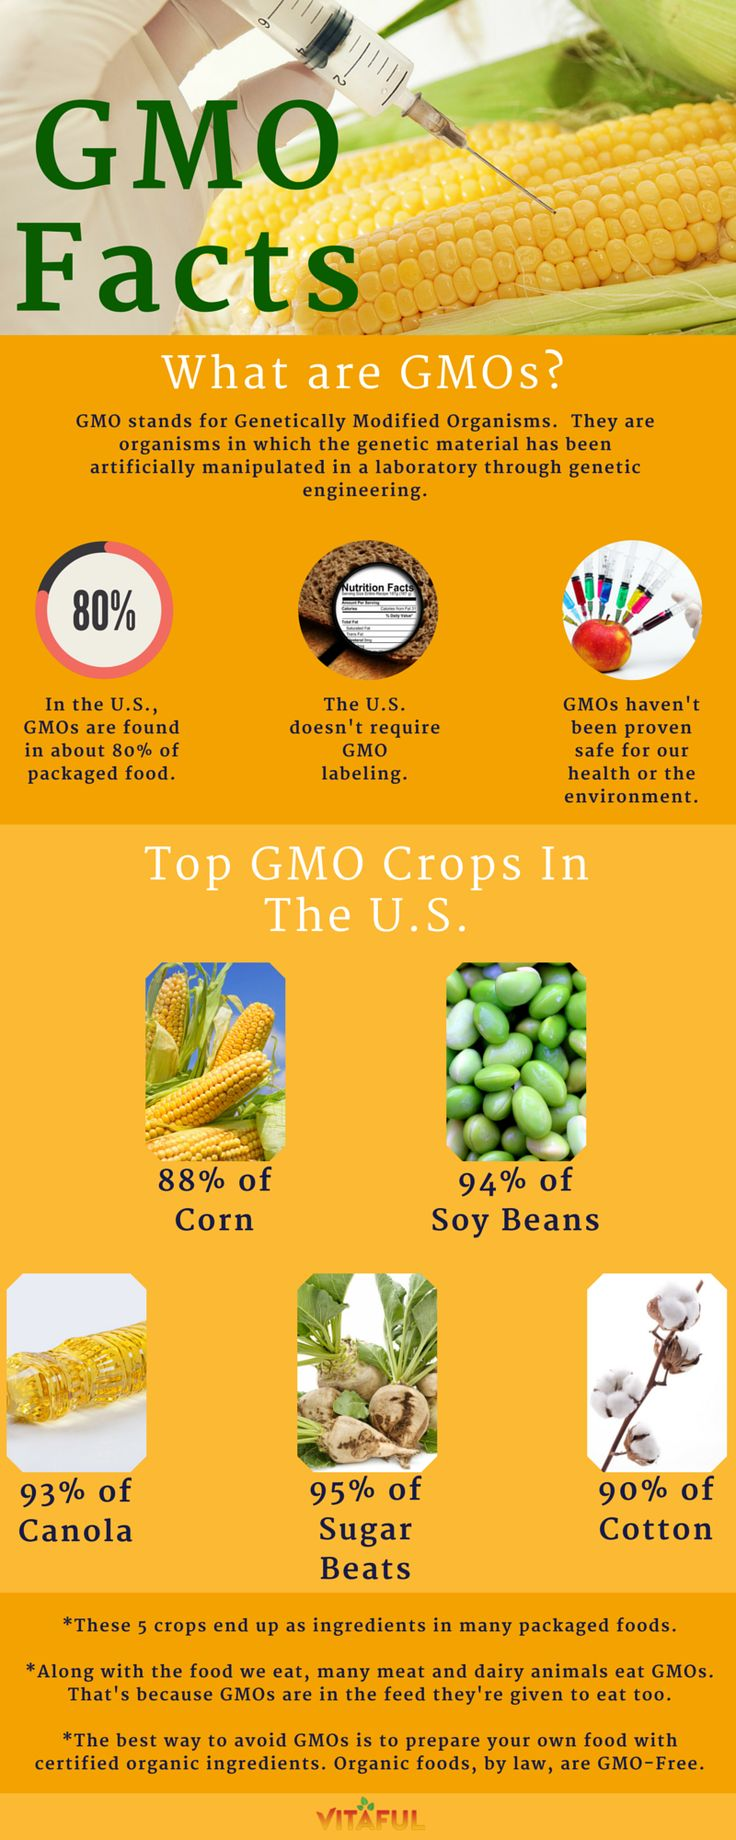 An-Overview-Of-GMOs-Includes-a-List-of-Top-GMO-Crops-in-the-U-S-And-How-To-Avoid-Eating-GMOs-Foo-wallpaper-wp3003202